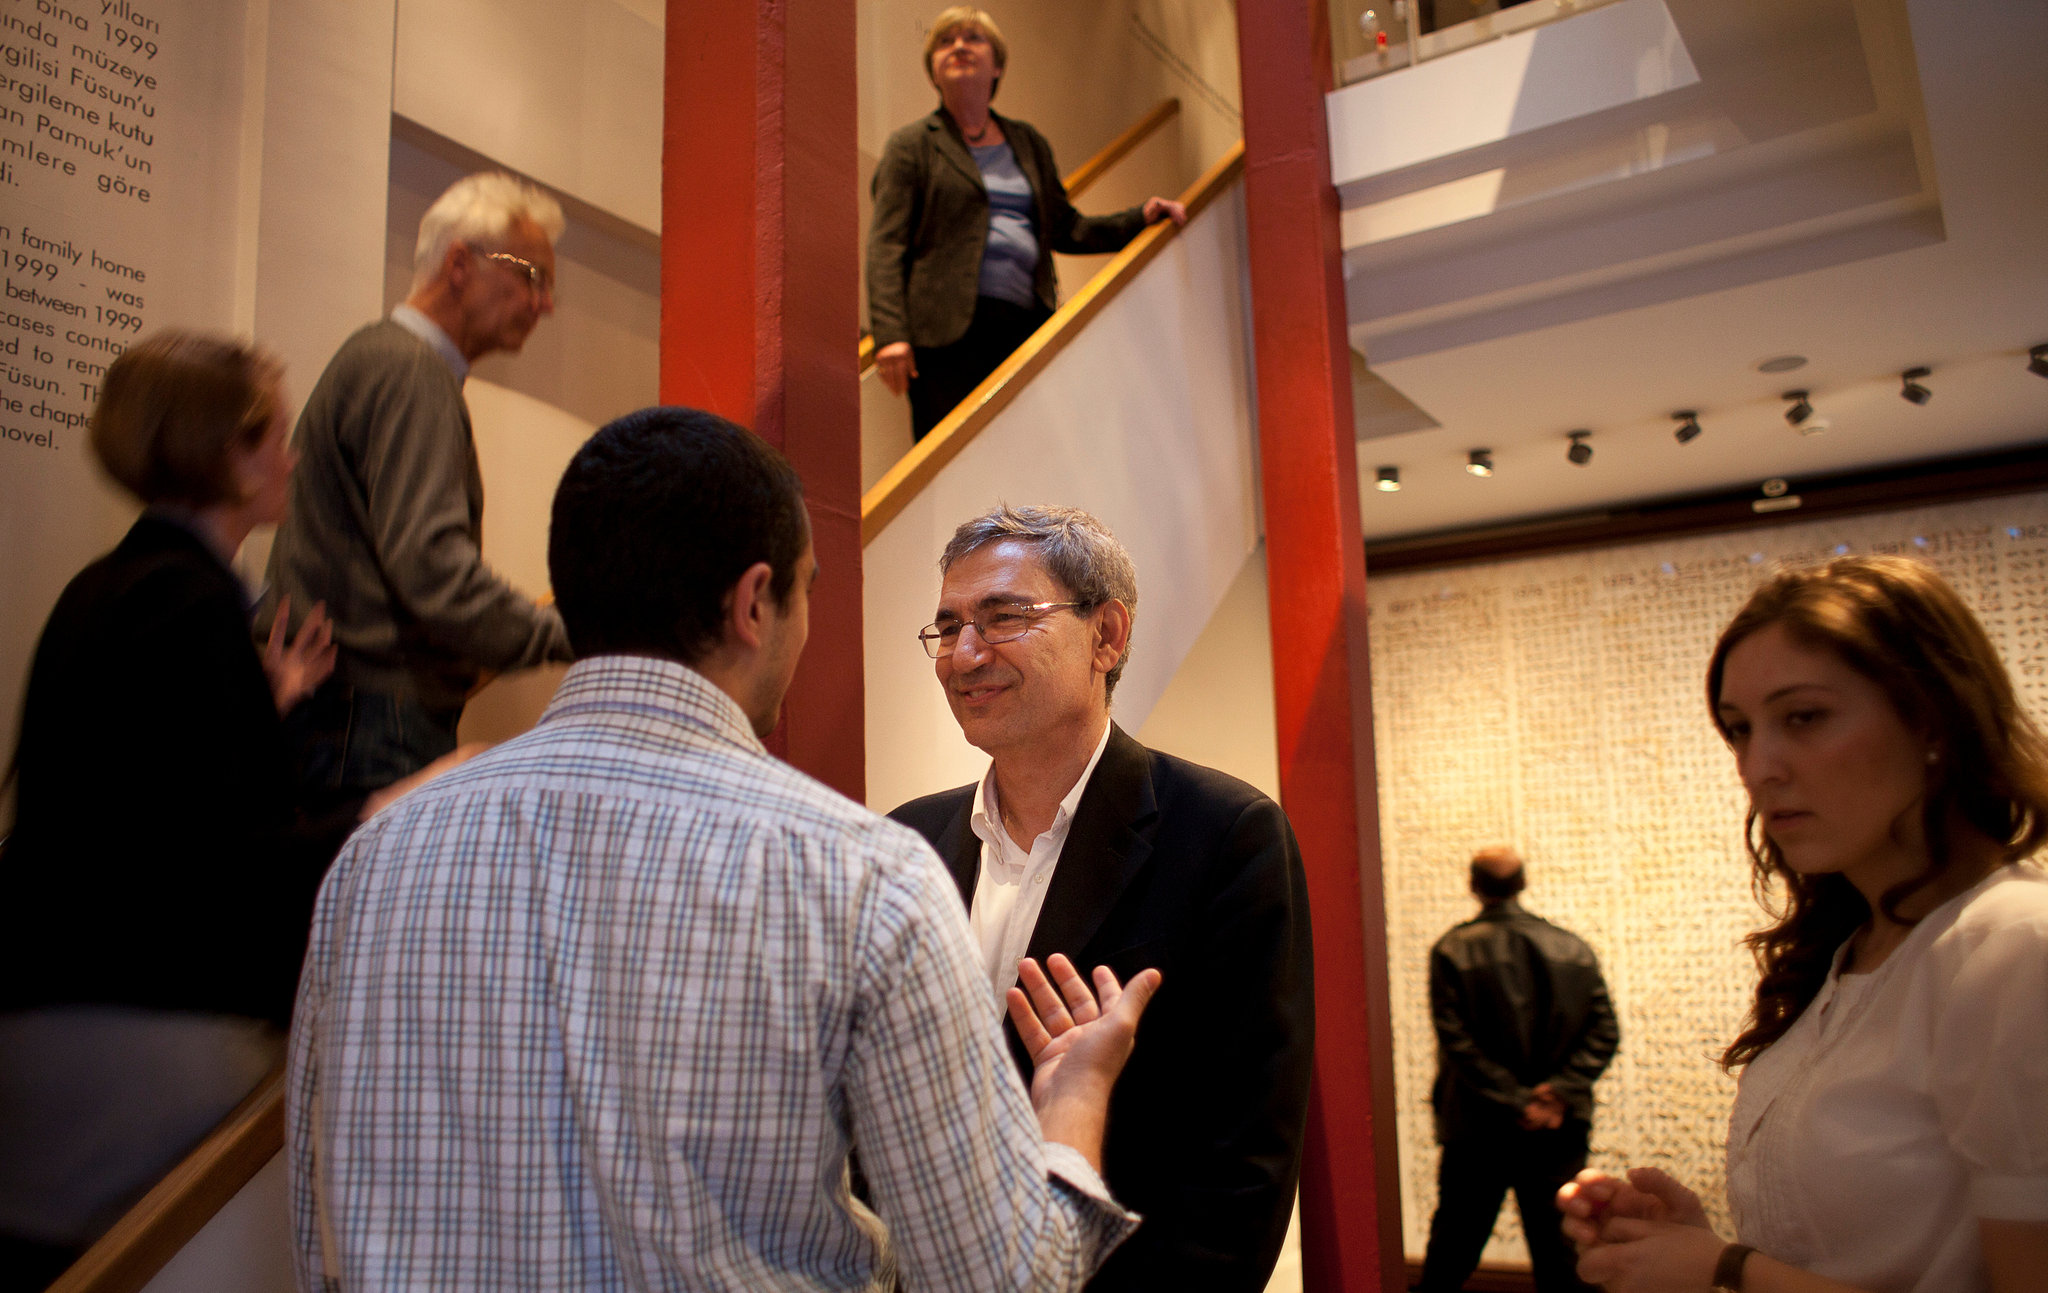 Orhan Pamuk Opens Museum Based on His Novel in Istanbul